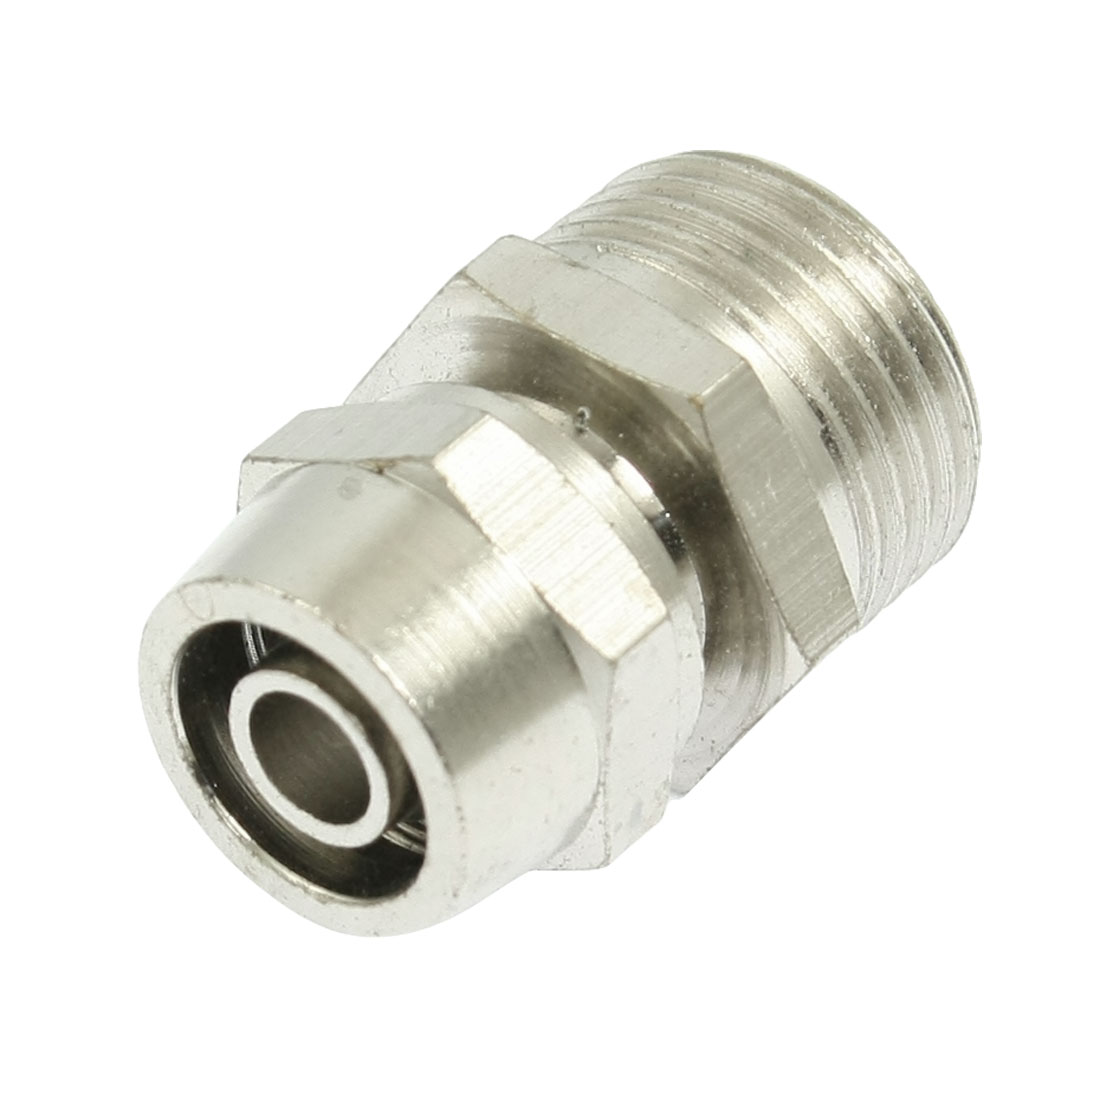 "6mm x 8mm Pipe Metal Air Quick Connector Coupler Joint PT 3/8"" Male Thread"